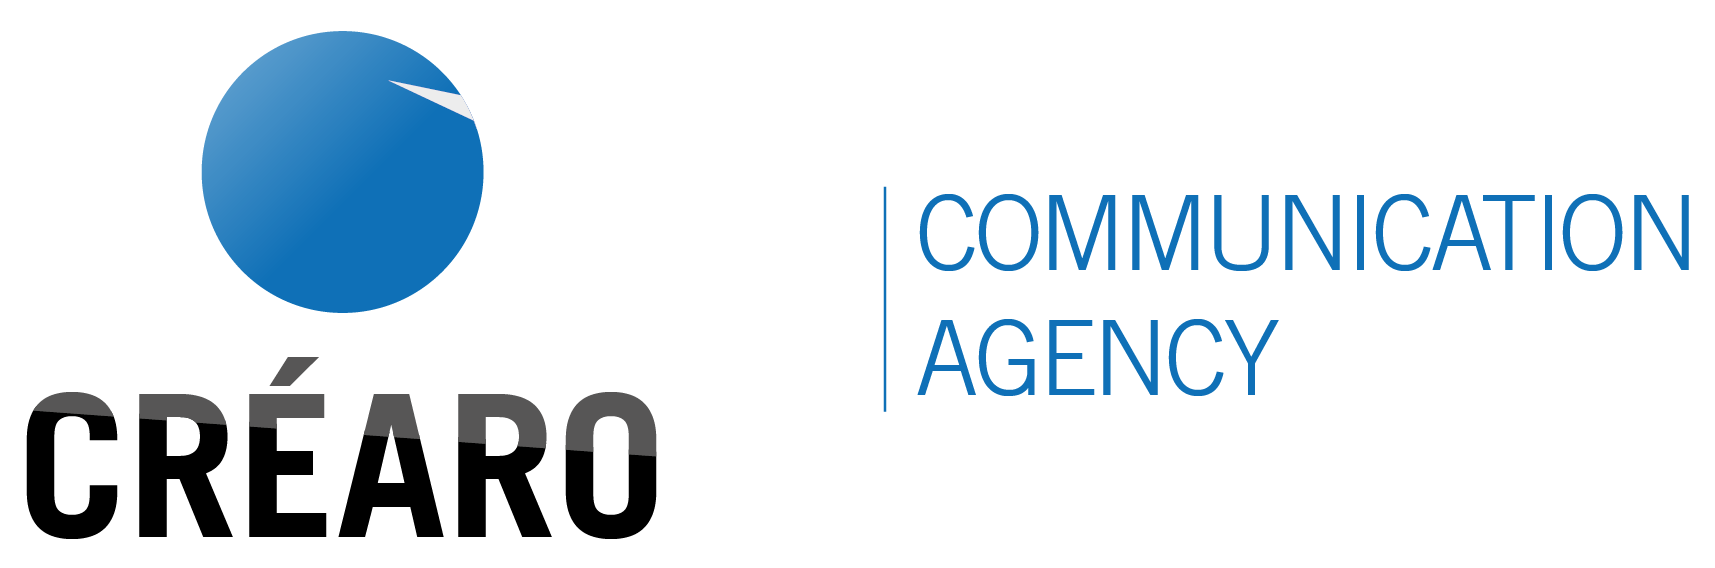 Créaro - Communication agency